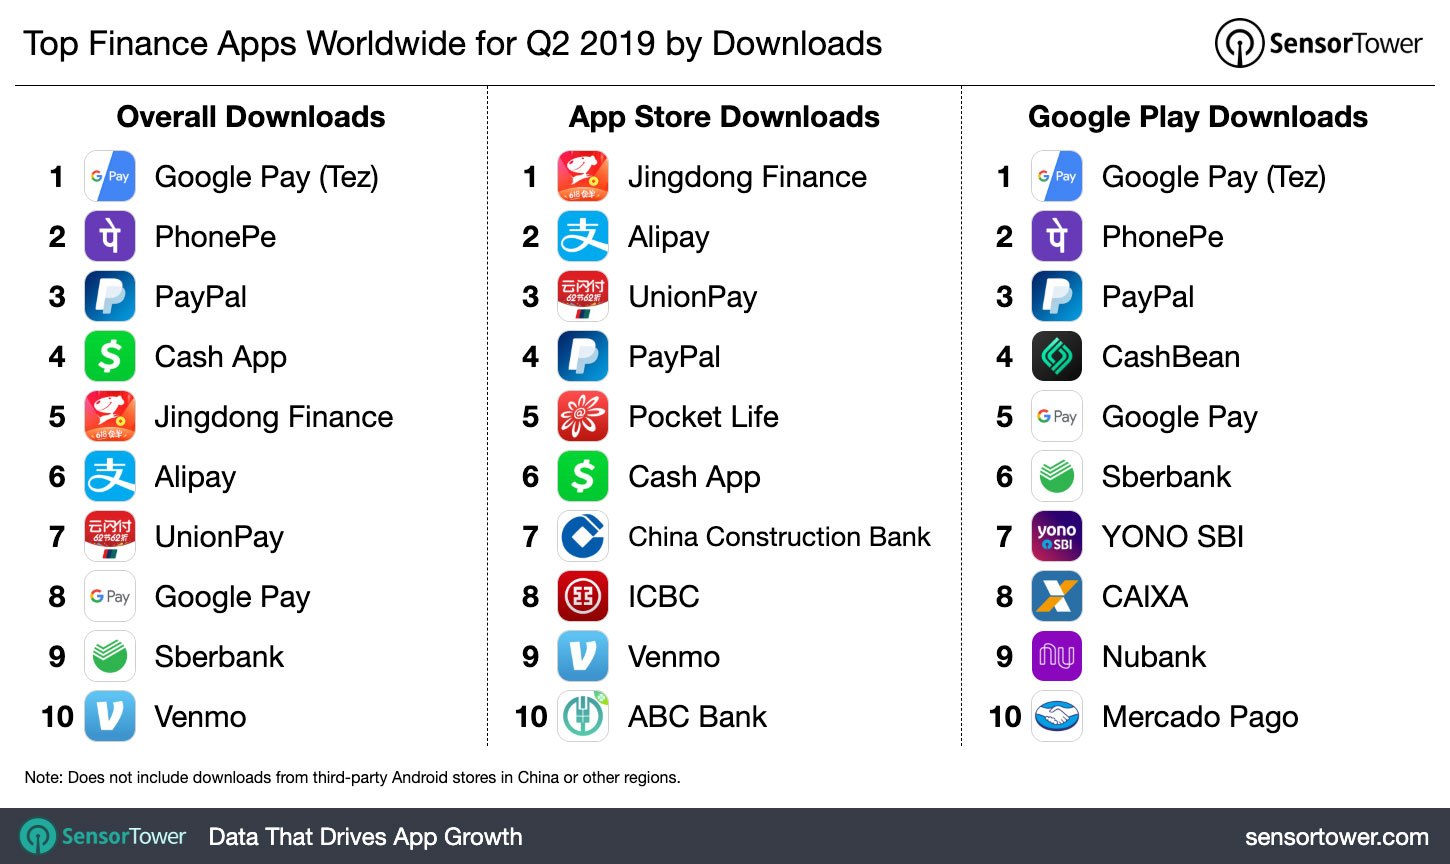 Top Finance Apps Worldwide for Q2 2019 by Downloads